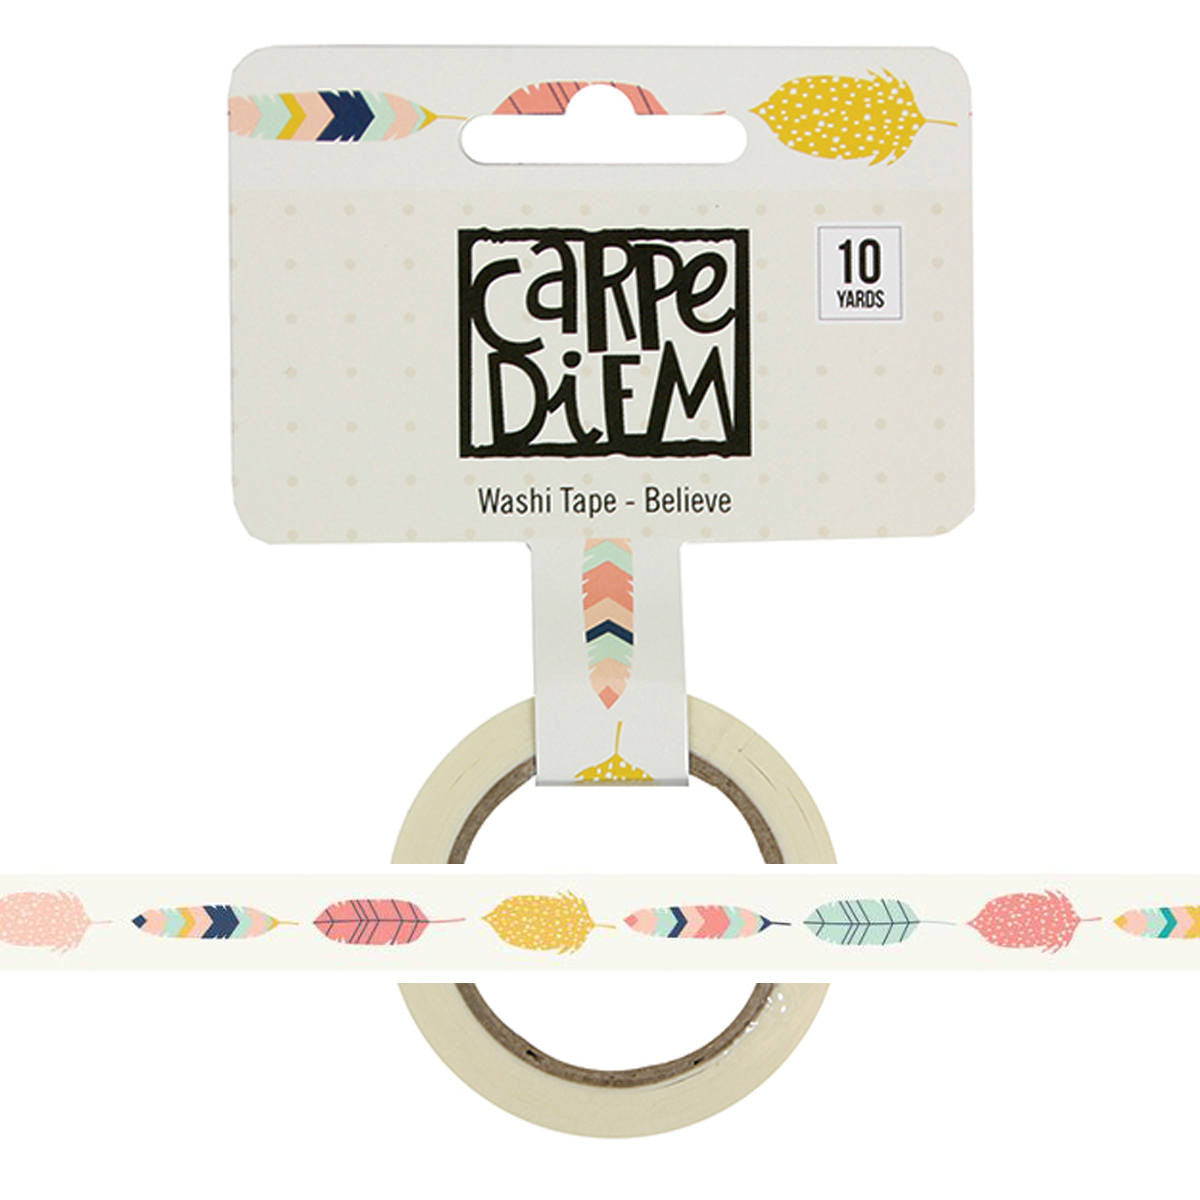 BELIEVE Feathers Carpe Diem Faith Washi Tape, 15mm x 10 yards